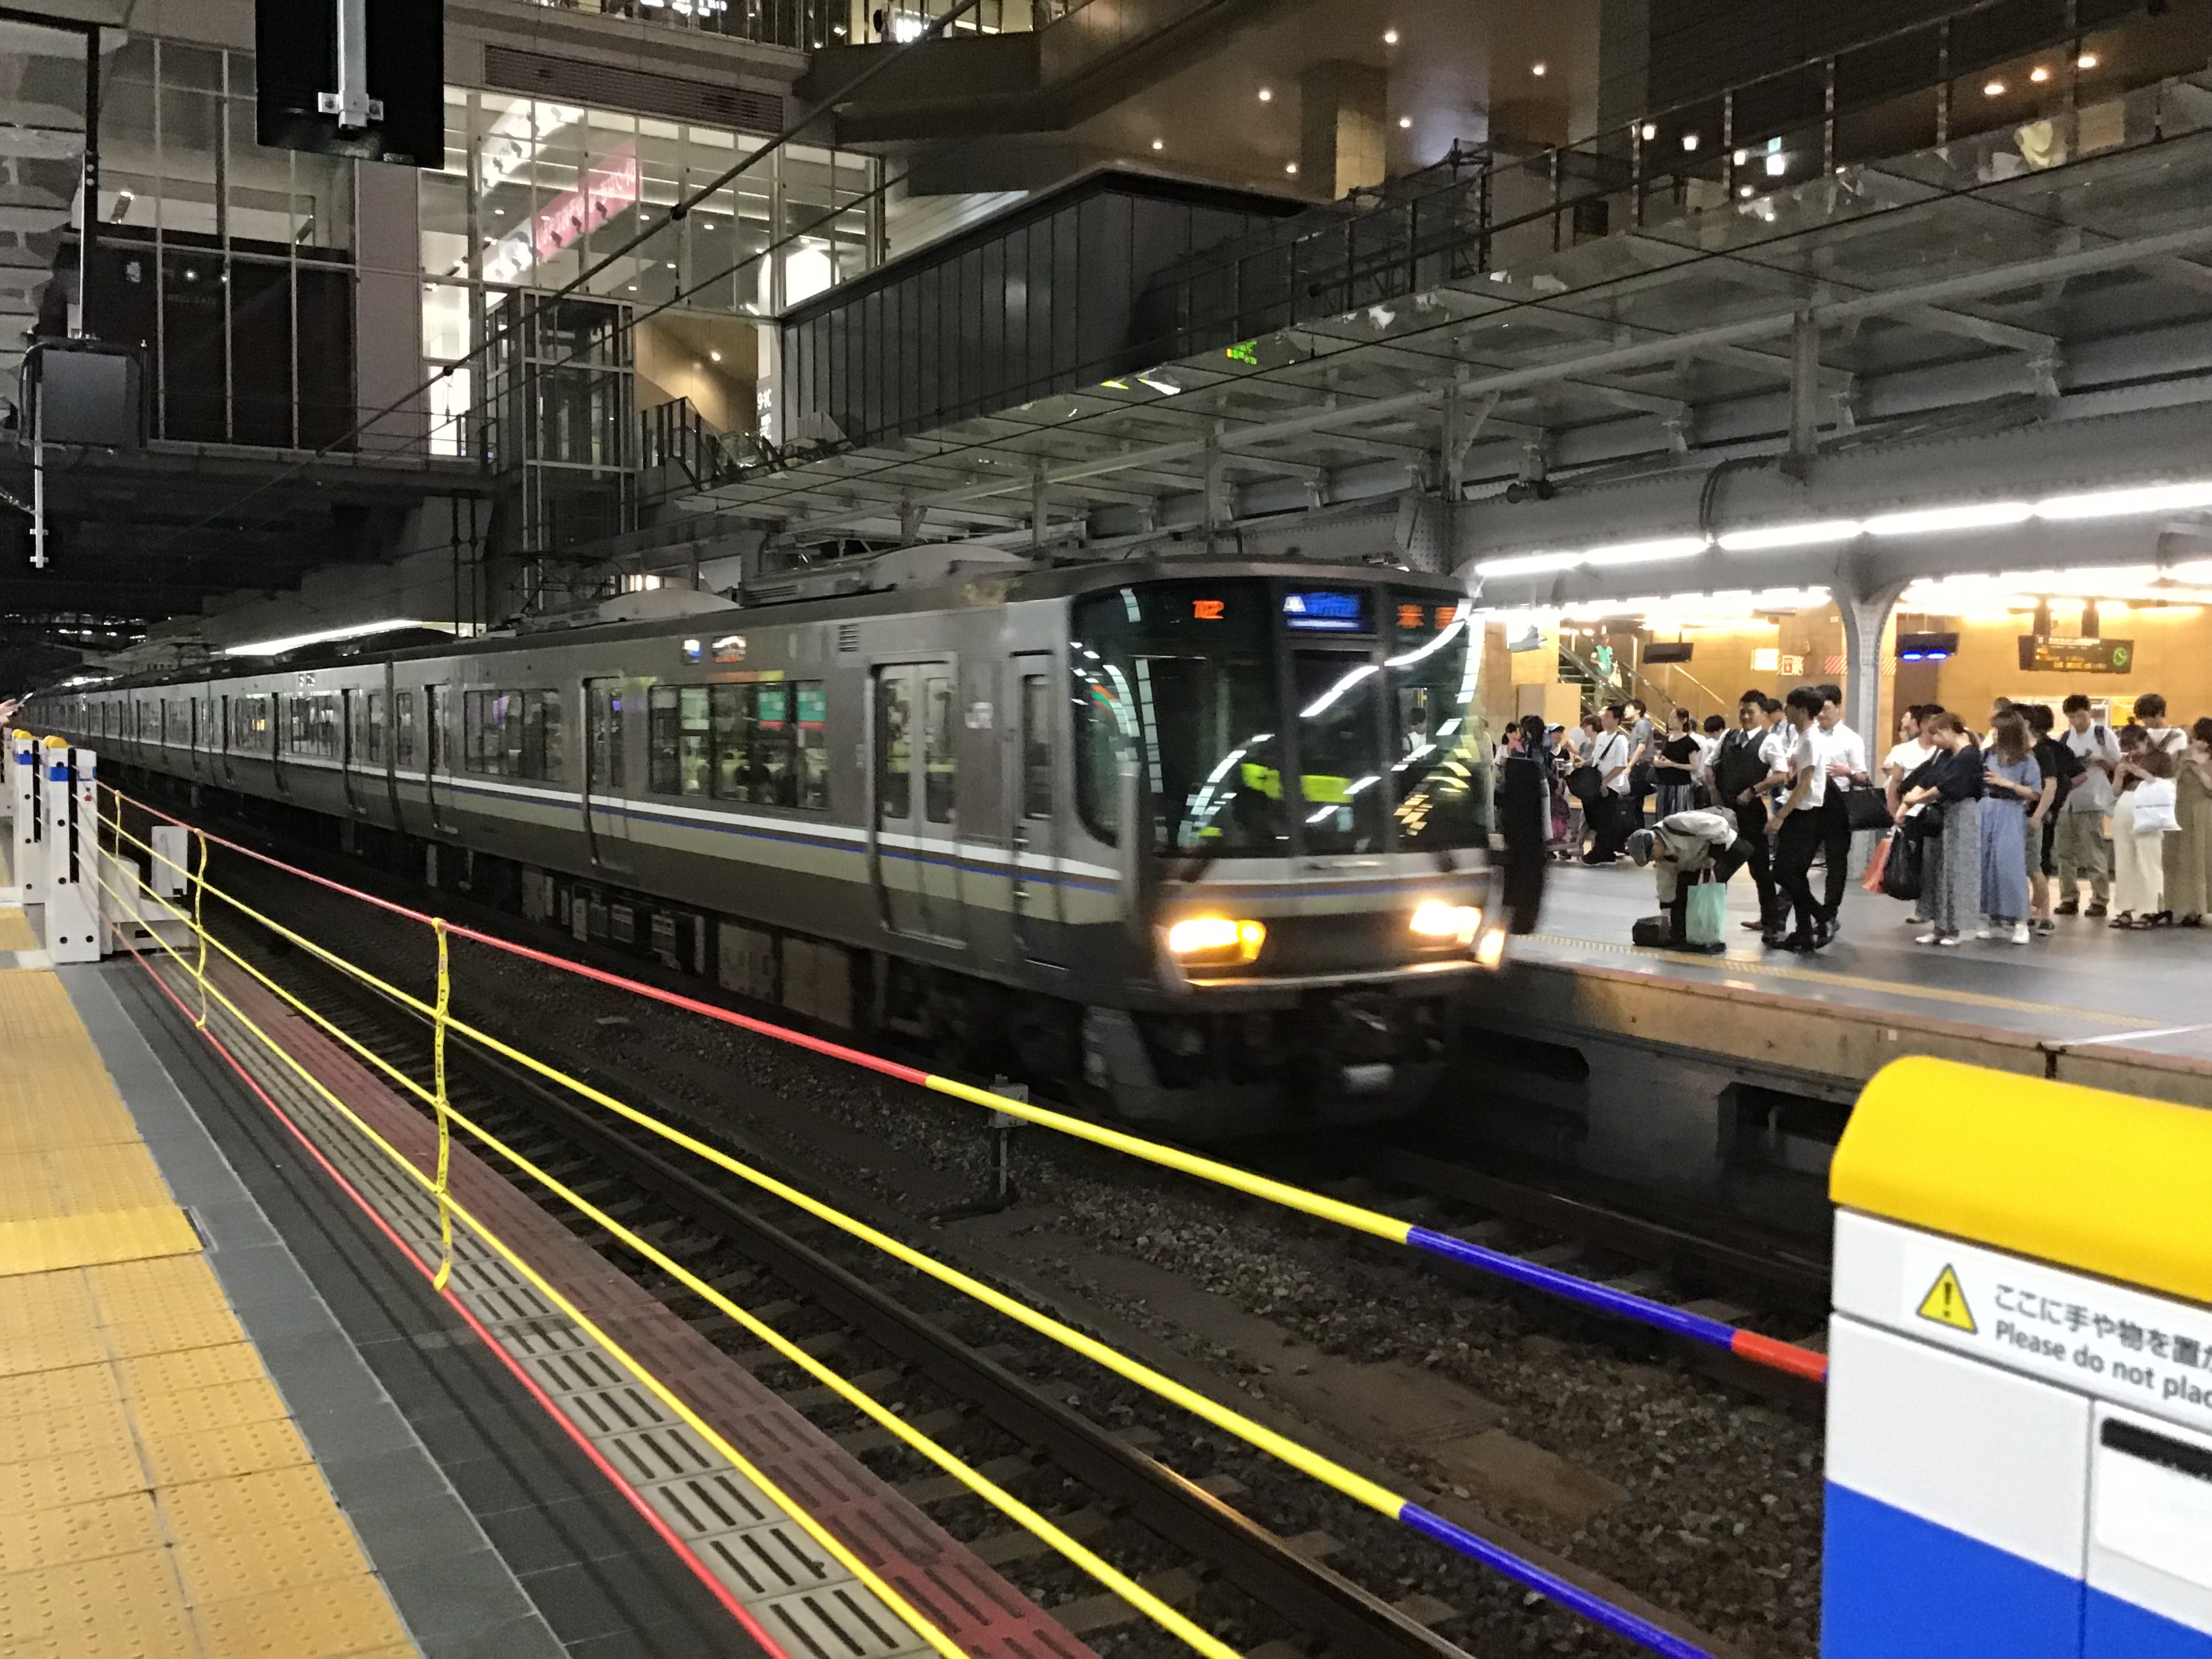 This is a local train bound for Takatsuki.